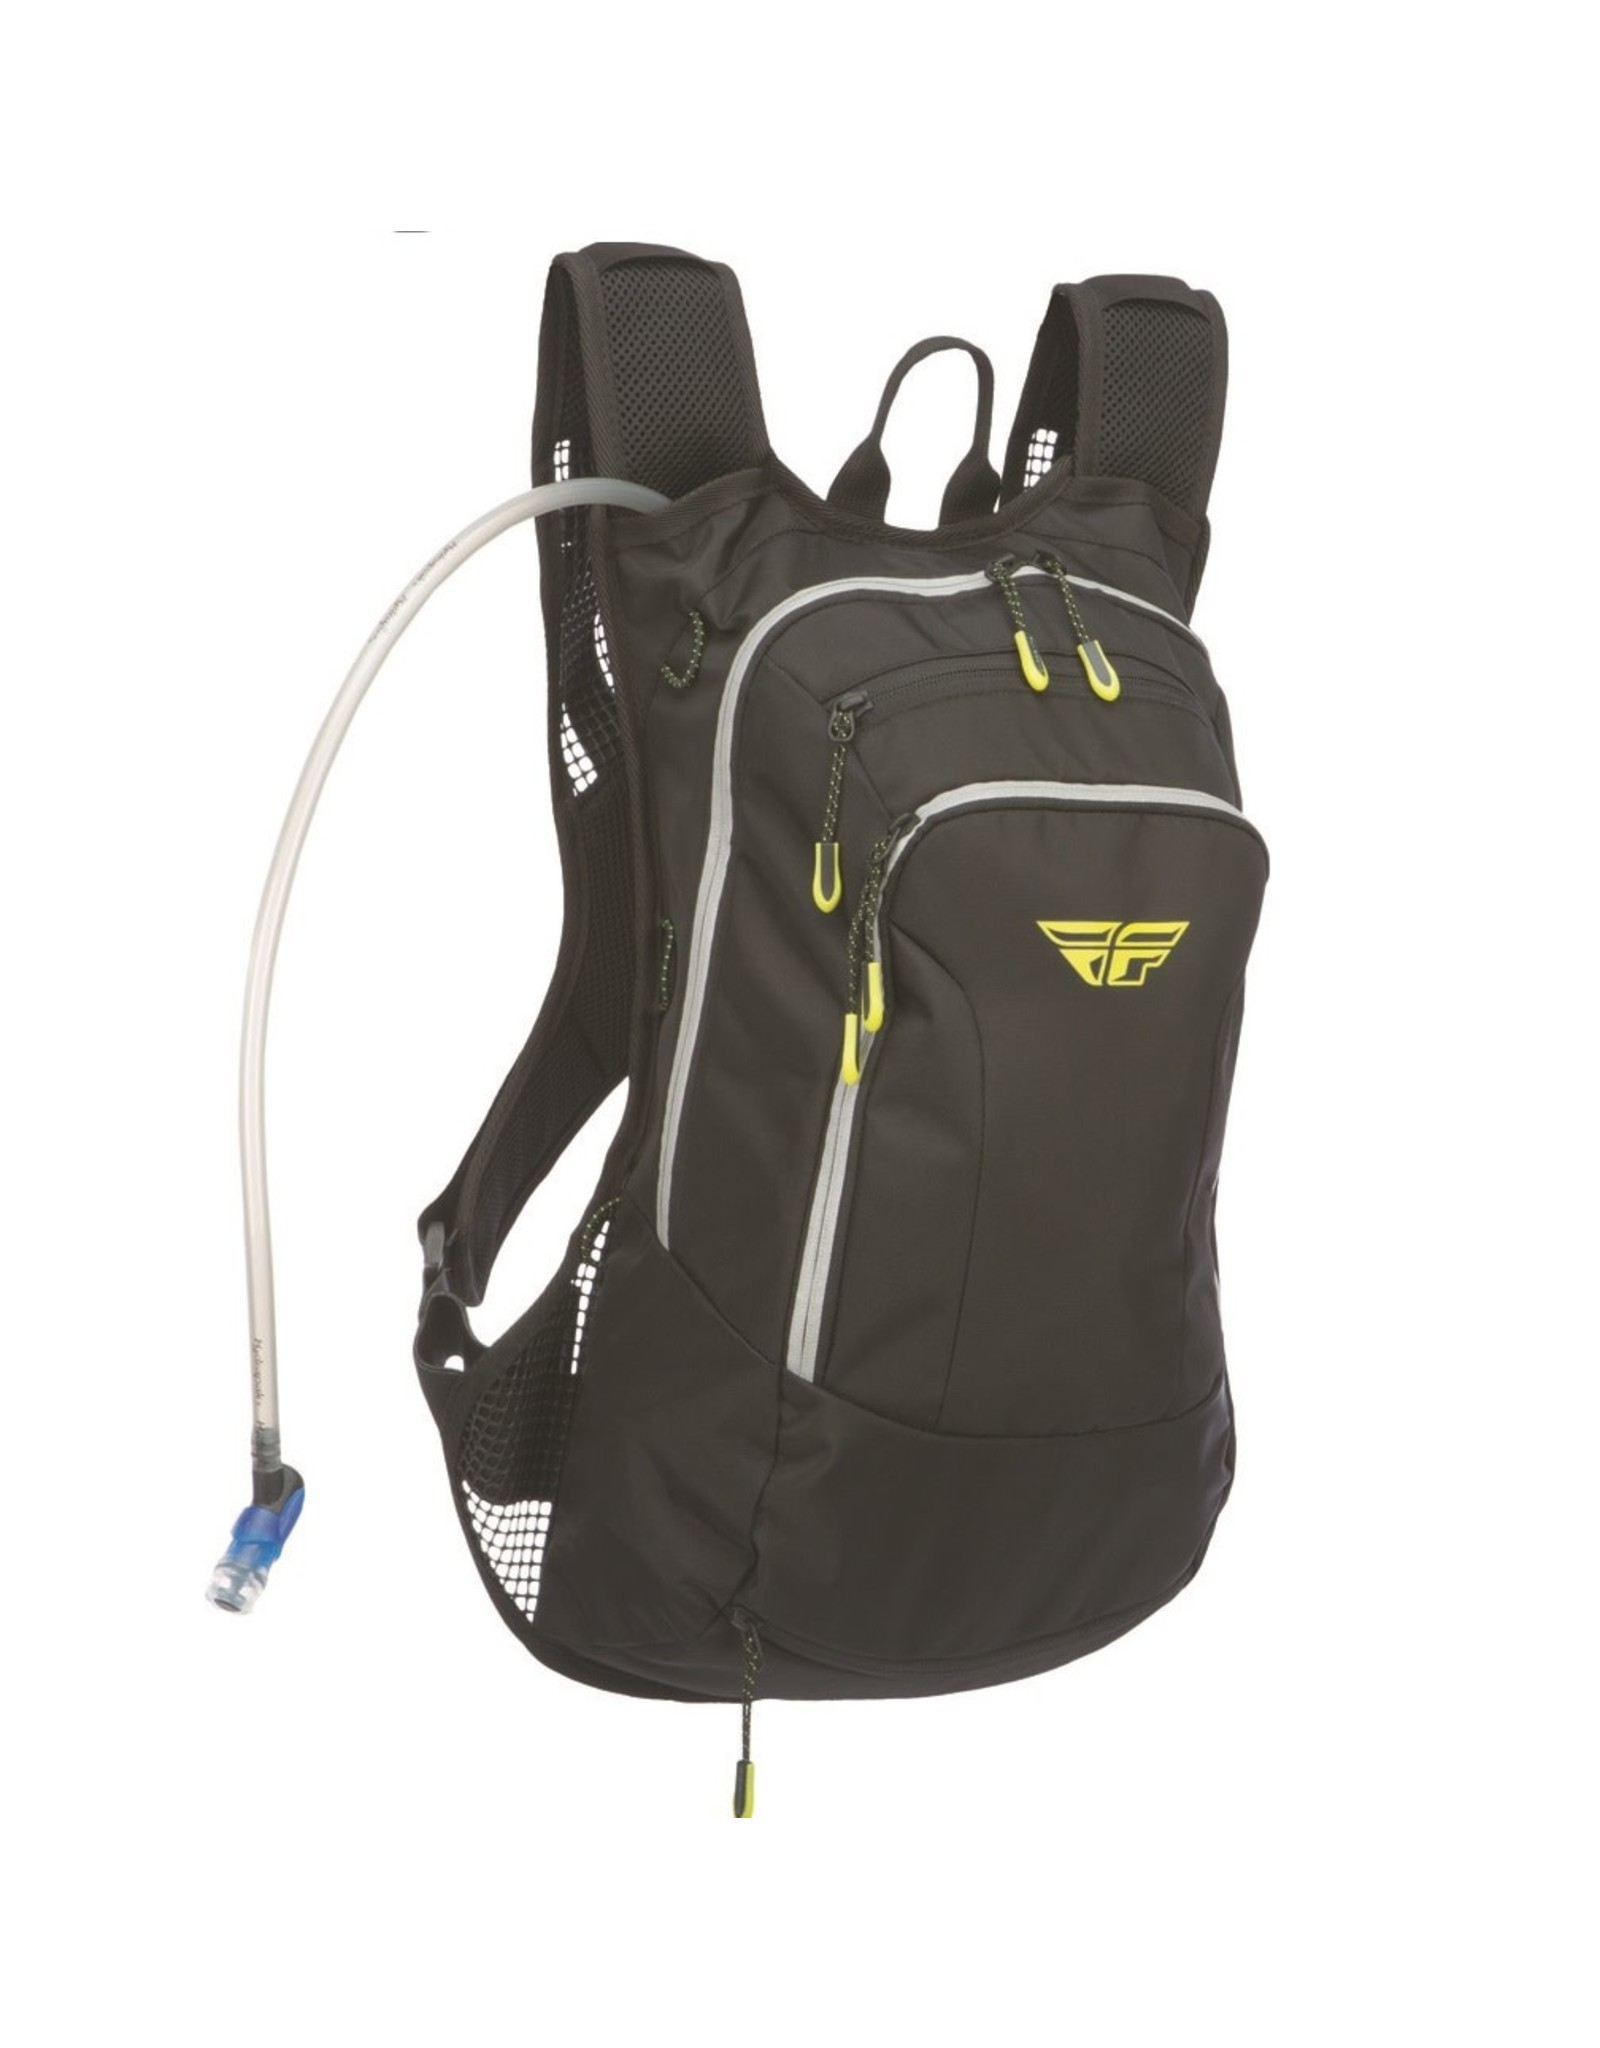 FLY RACING Fly Racing XC100 Hydration Pack 3L